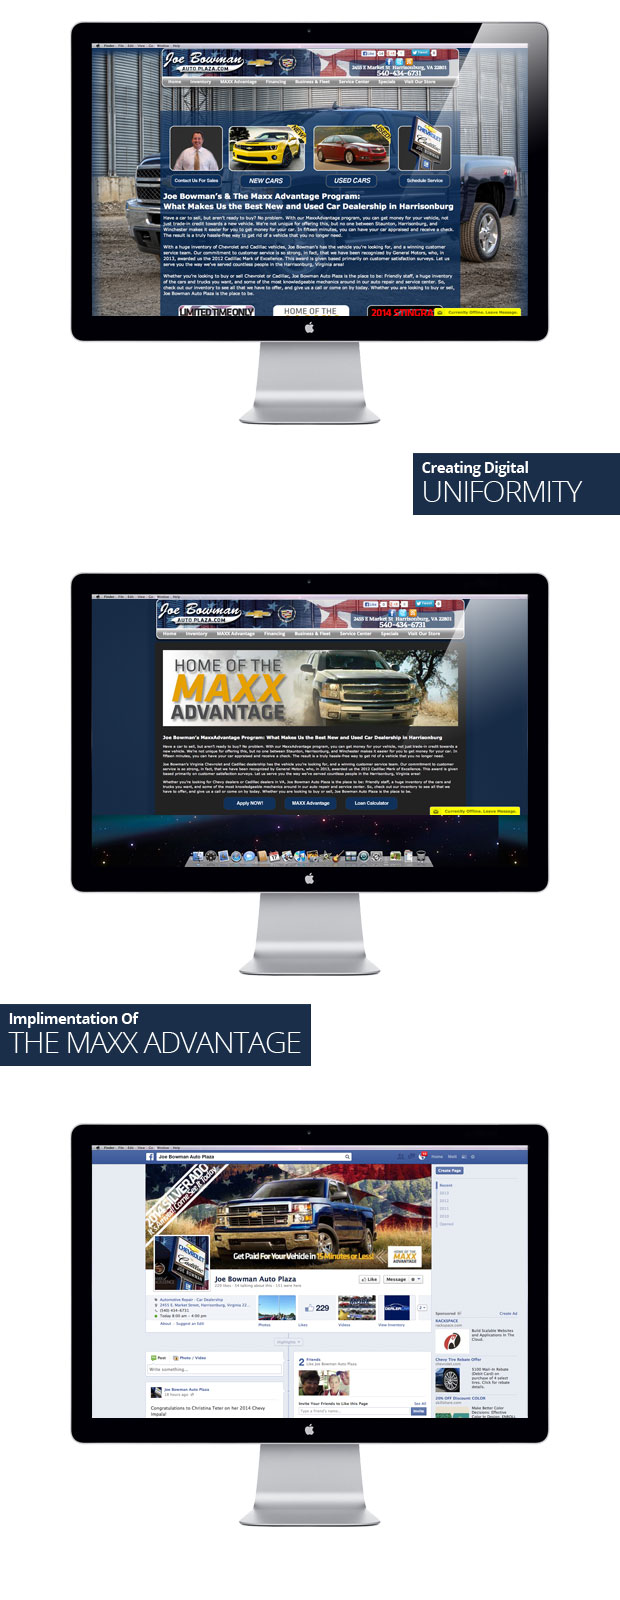 Maxx_Advantage_2